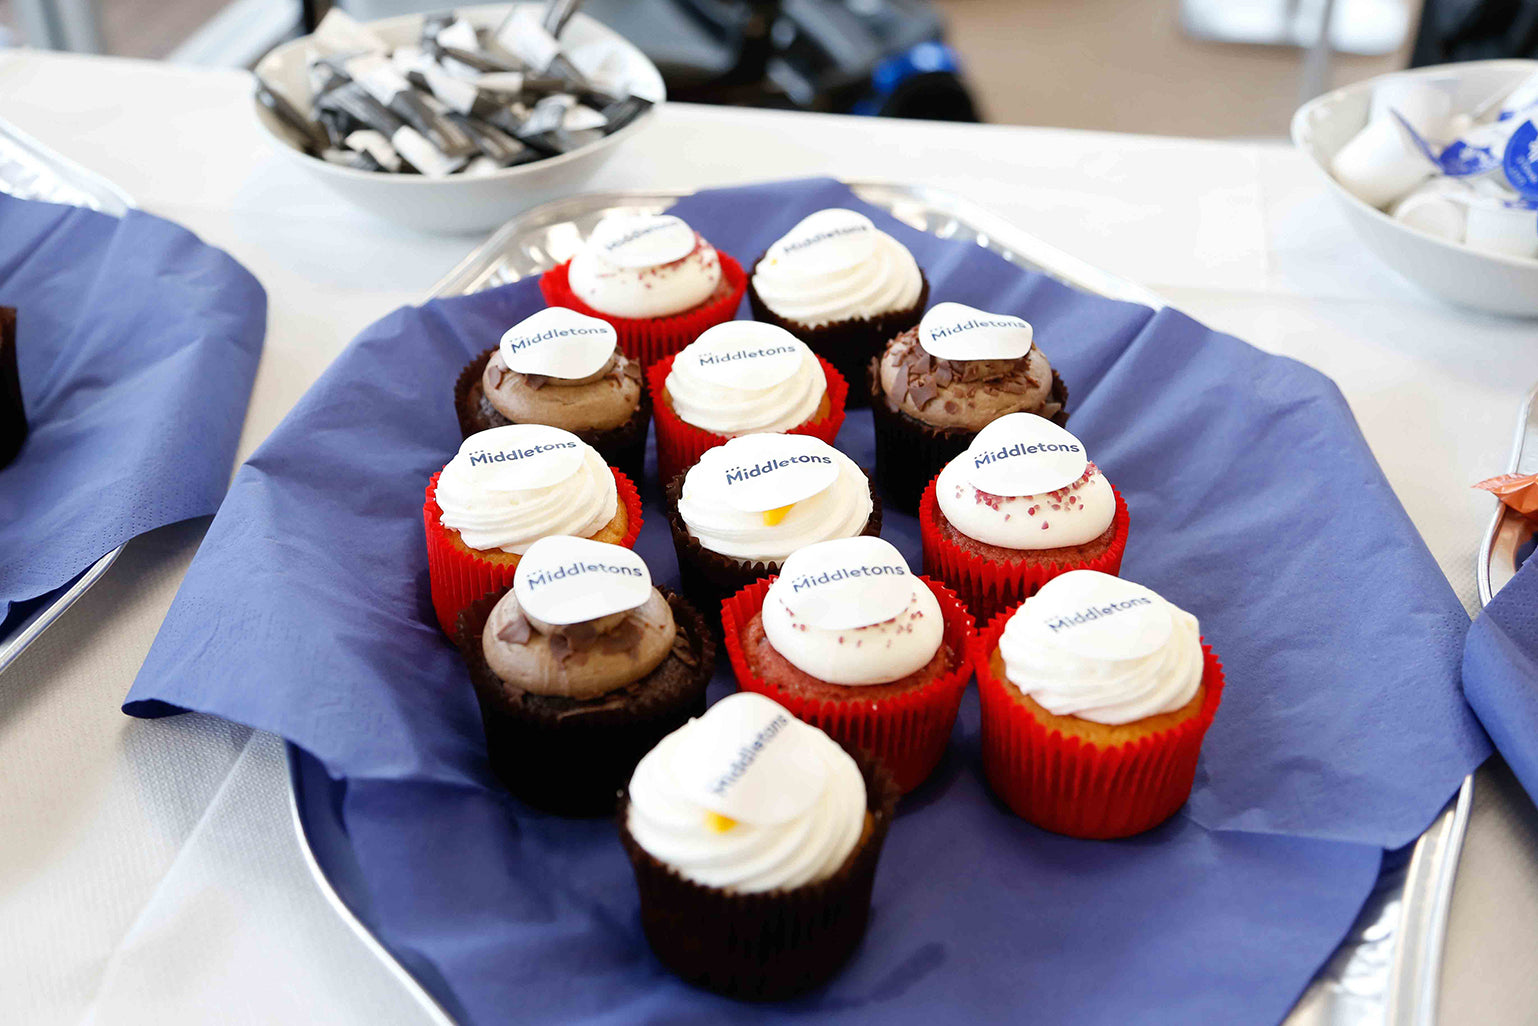 Cupcakes with the Middletons logo